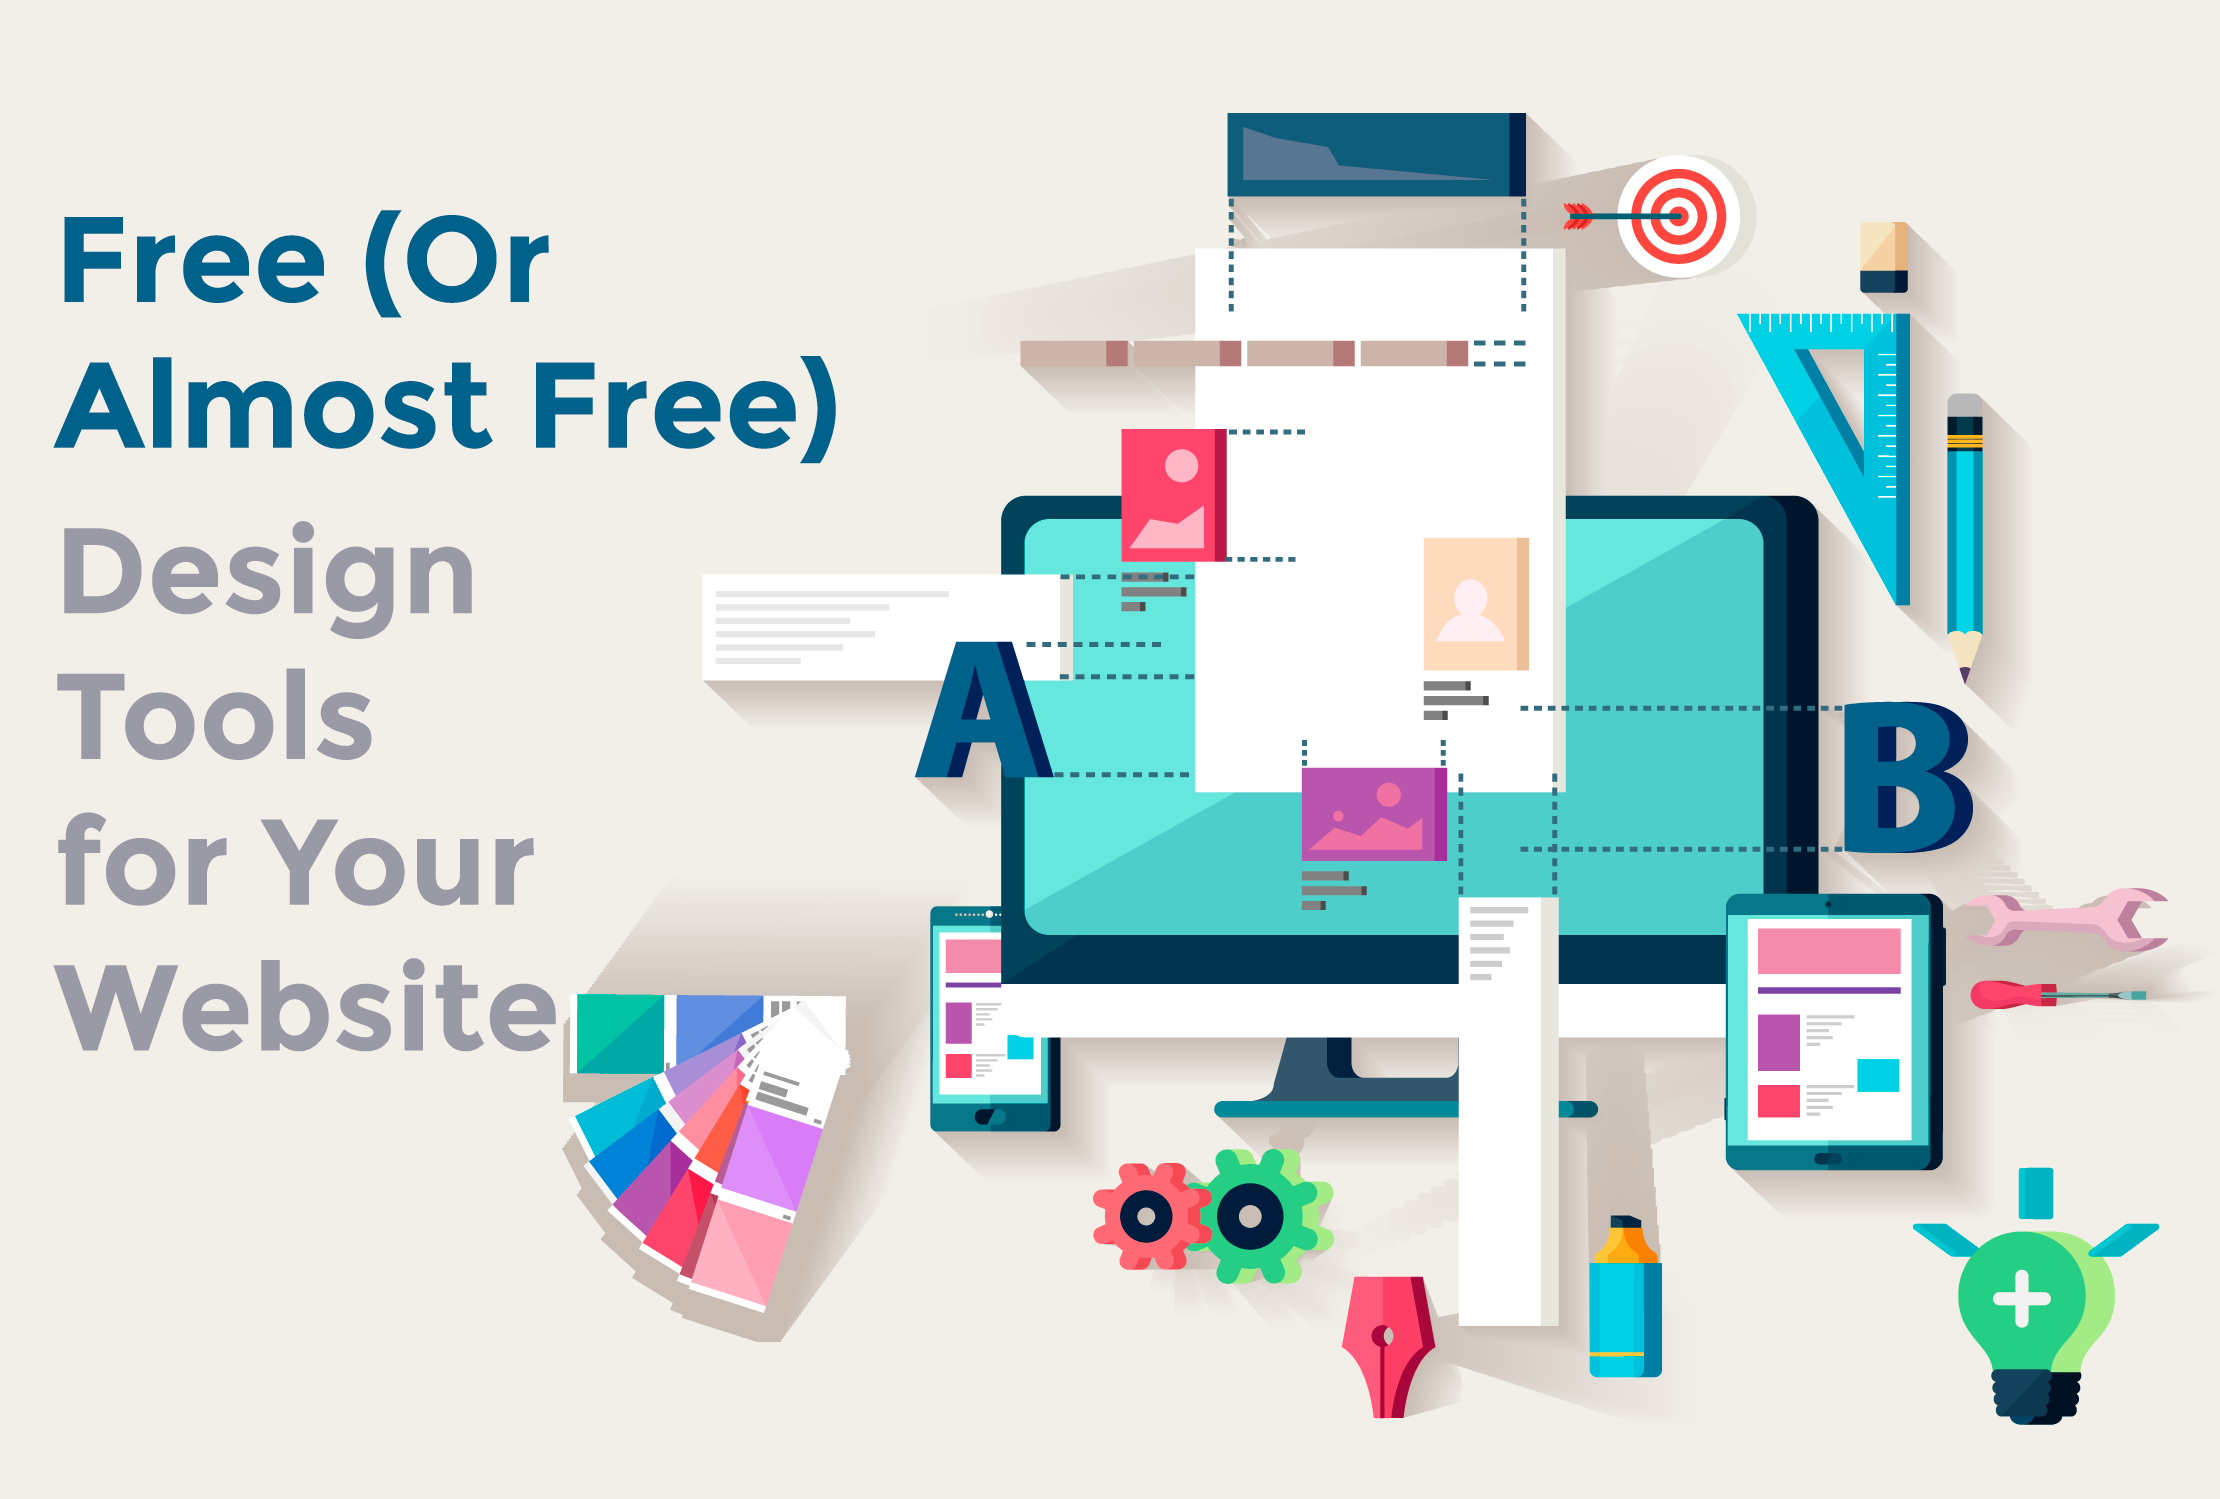 Free (Or Almost Free) Design Tools for Your Website